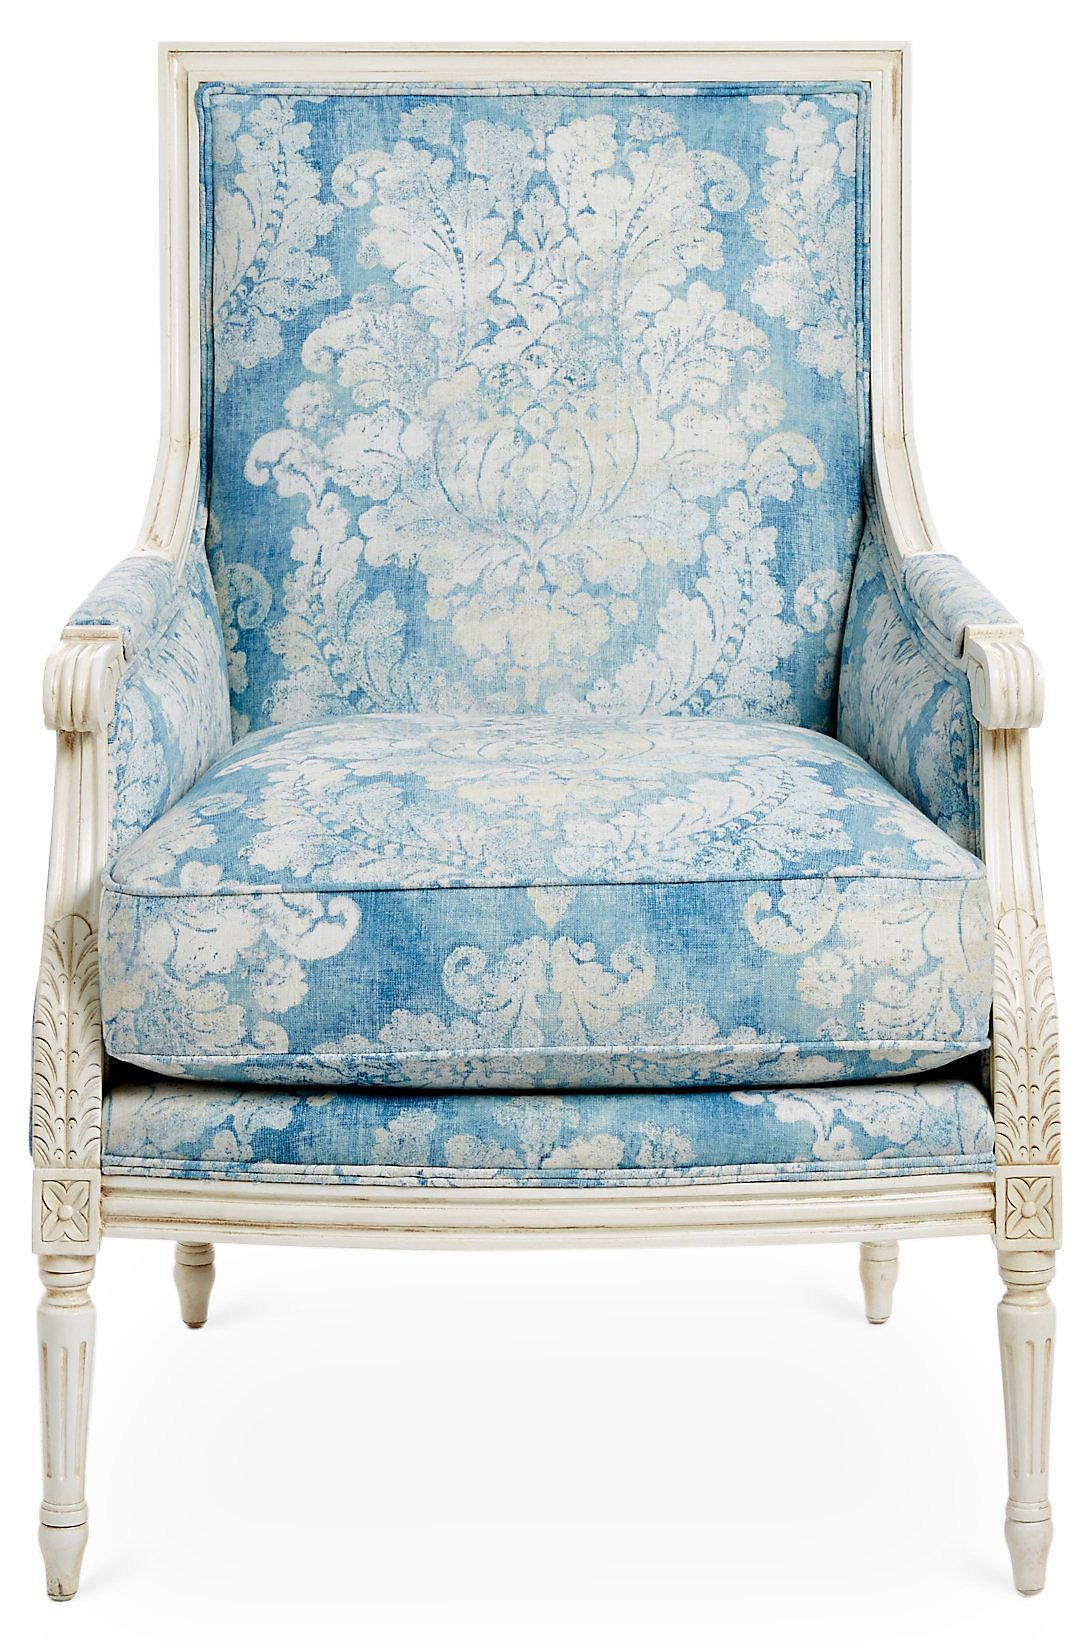 Best James Accent Chair Blue Floral One Kings Lane Accent 640 x 480